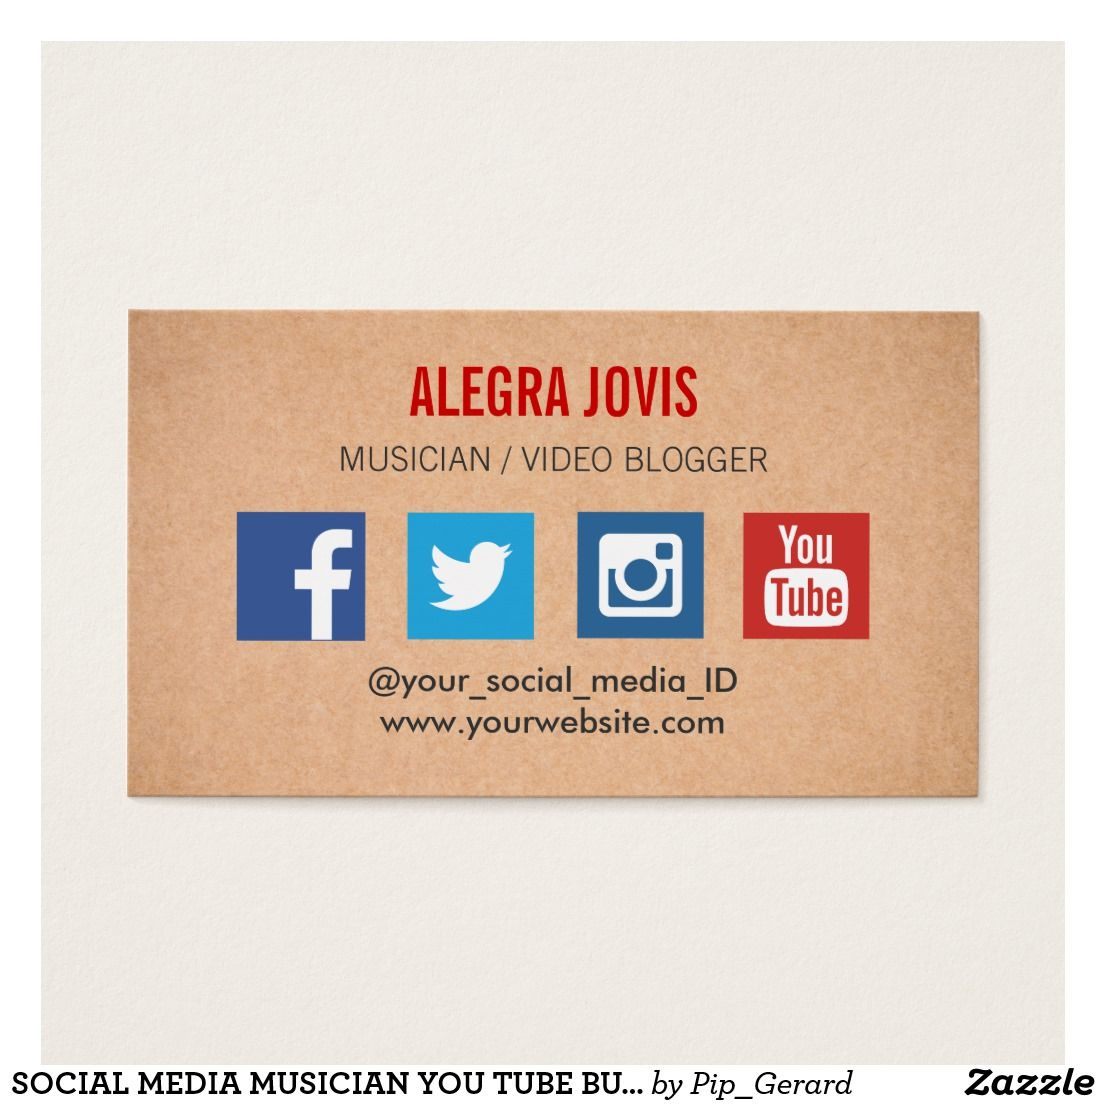 Social Media Musician You Tube Business Card Business Cards - Social media business card template